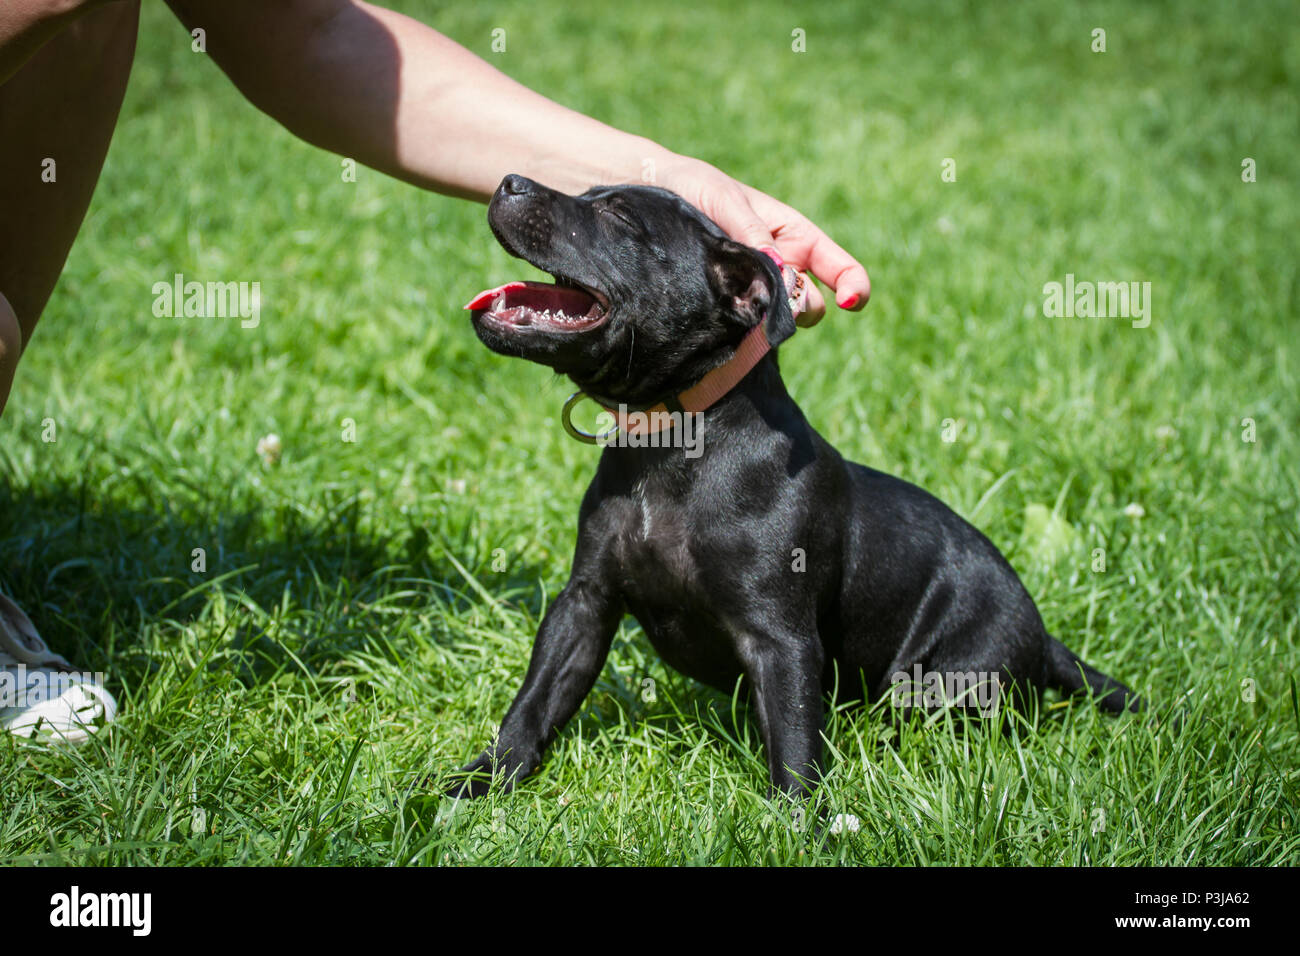 Black Staffordshire Bull Terrier puppy sitting on a meadow - Stock Image